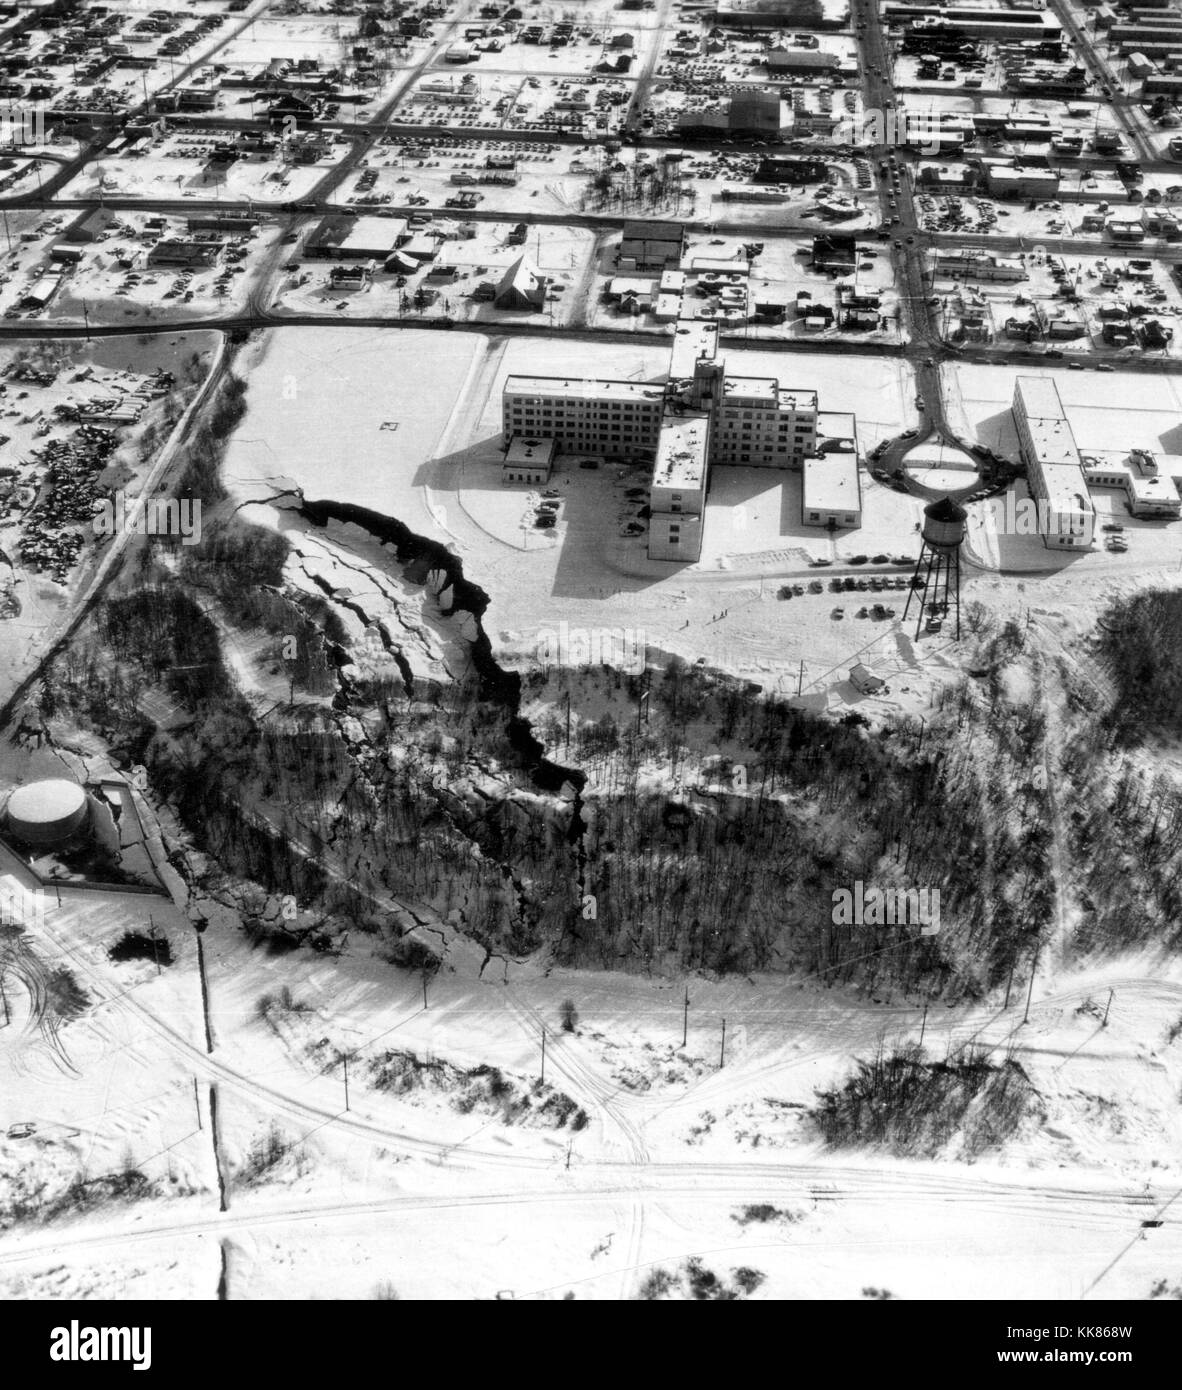 Overhead view of a landslide from the March 27, 1964 Alaska earthquake. The landslide occurred next to this hospital - Stock Image